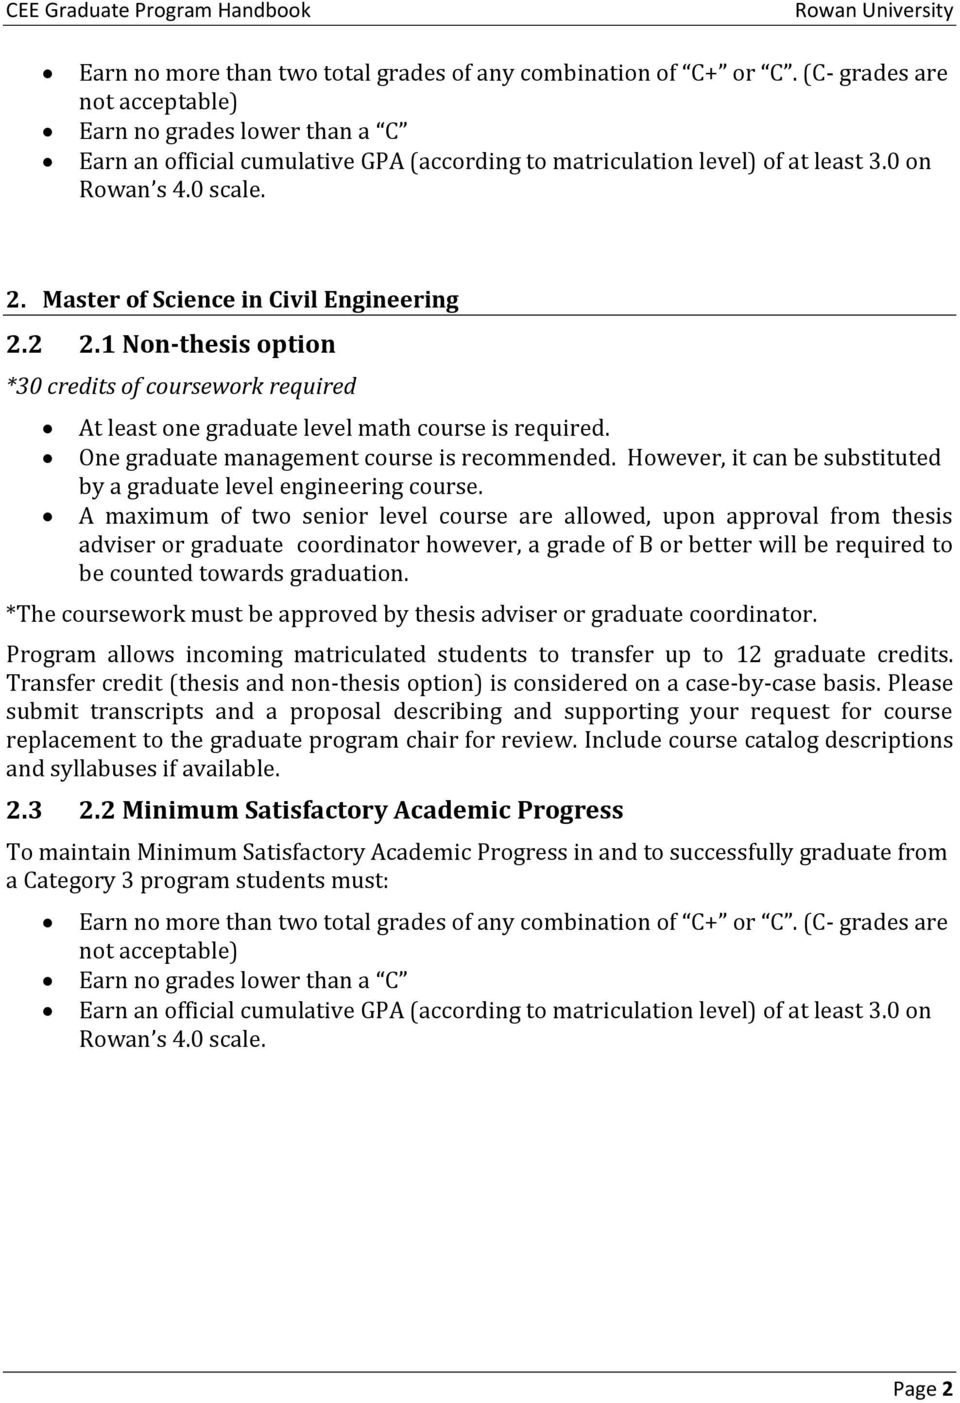 Master of Science in Civil Engineering 2.2 2.1 Non-thesis option *30 credits of coursework required At least one graduate level math course is required. One graduate management course is recommended.